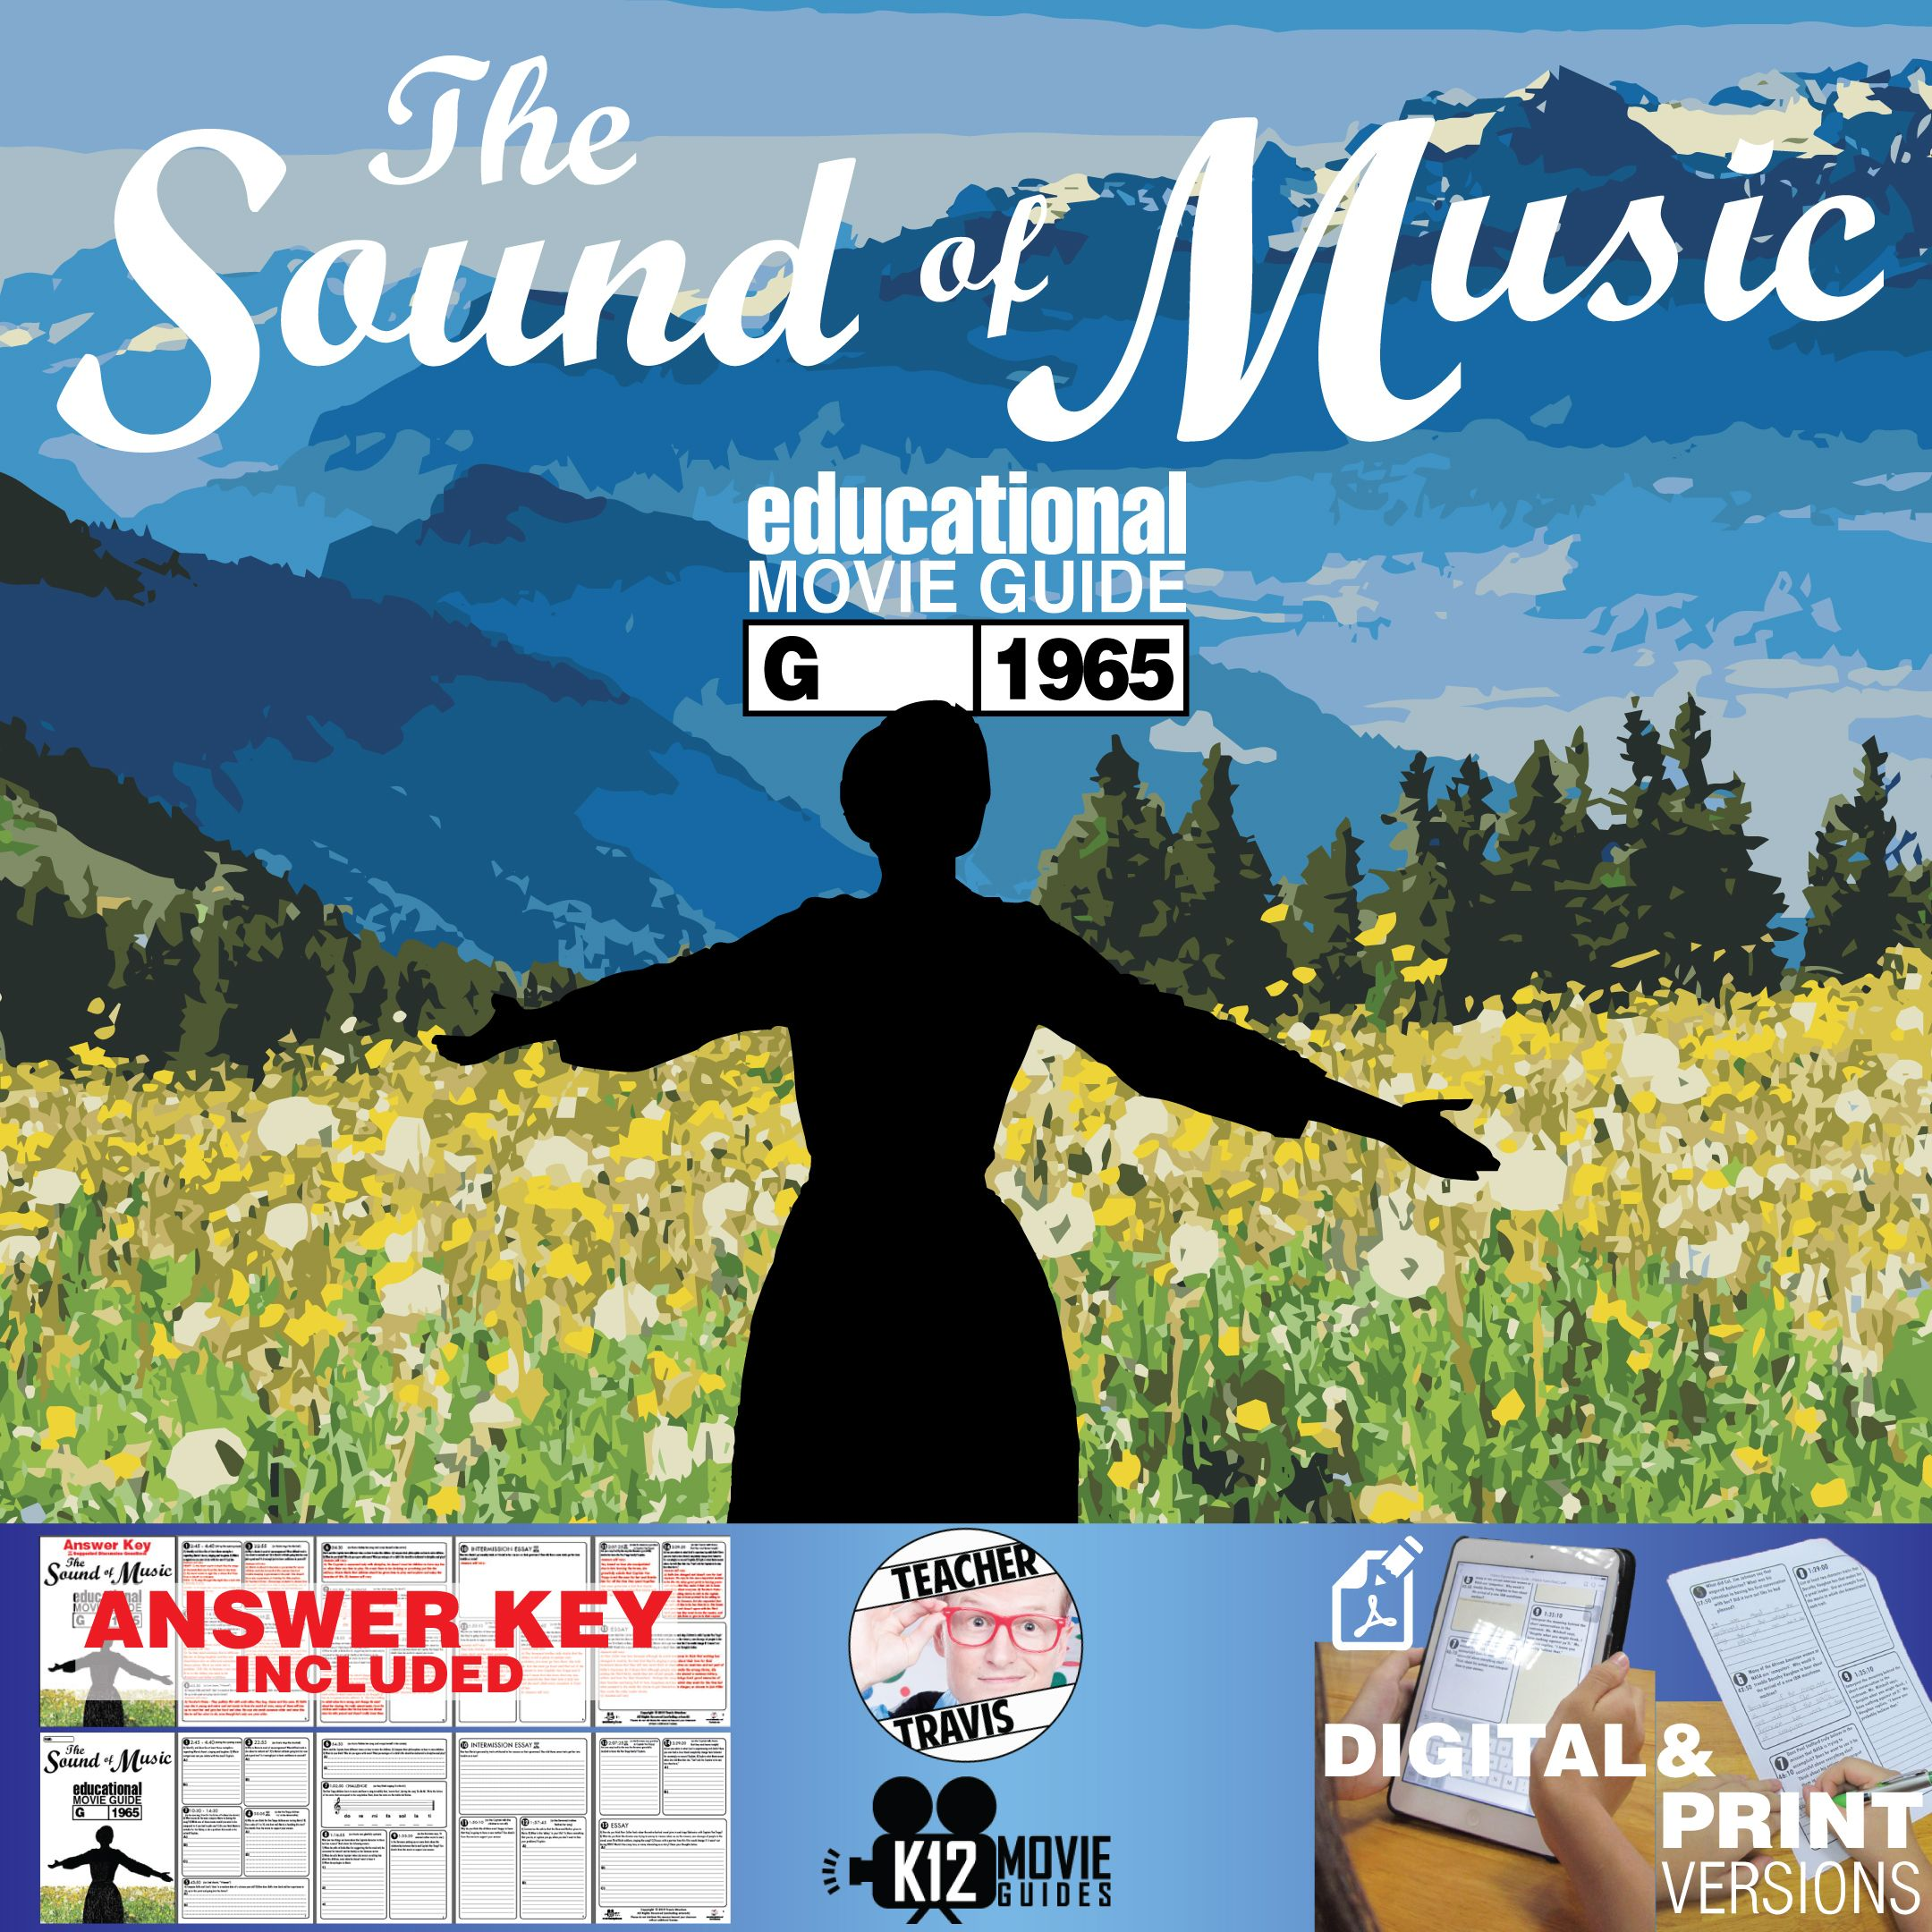 The Sound Of Music Movie Guide